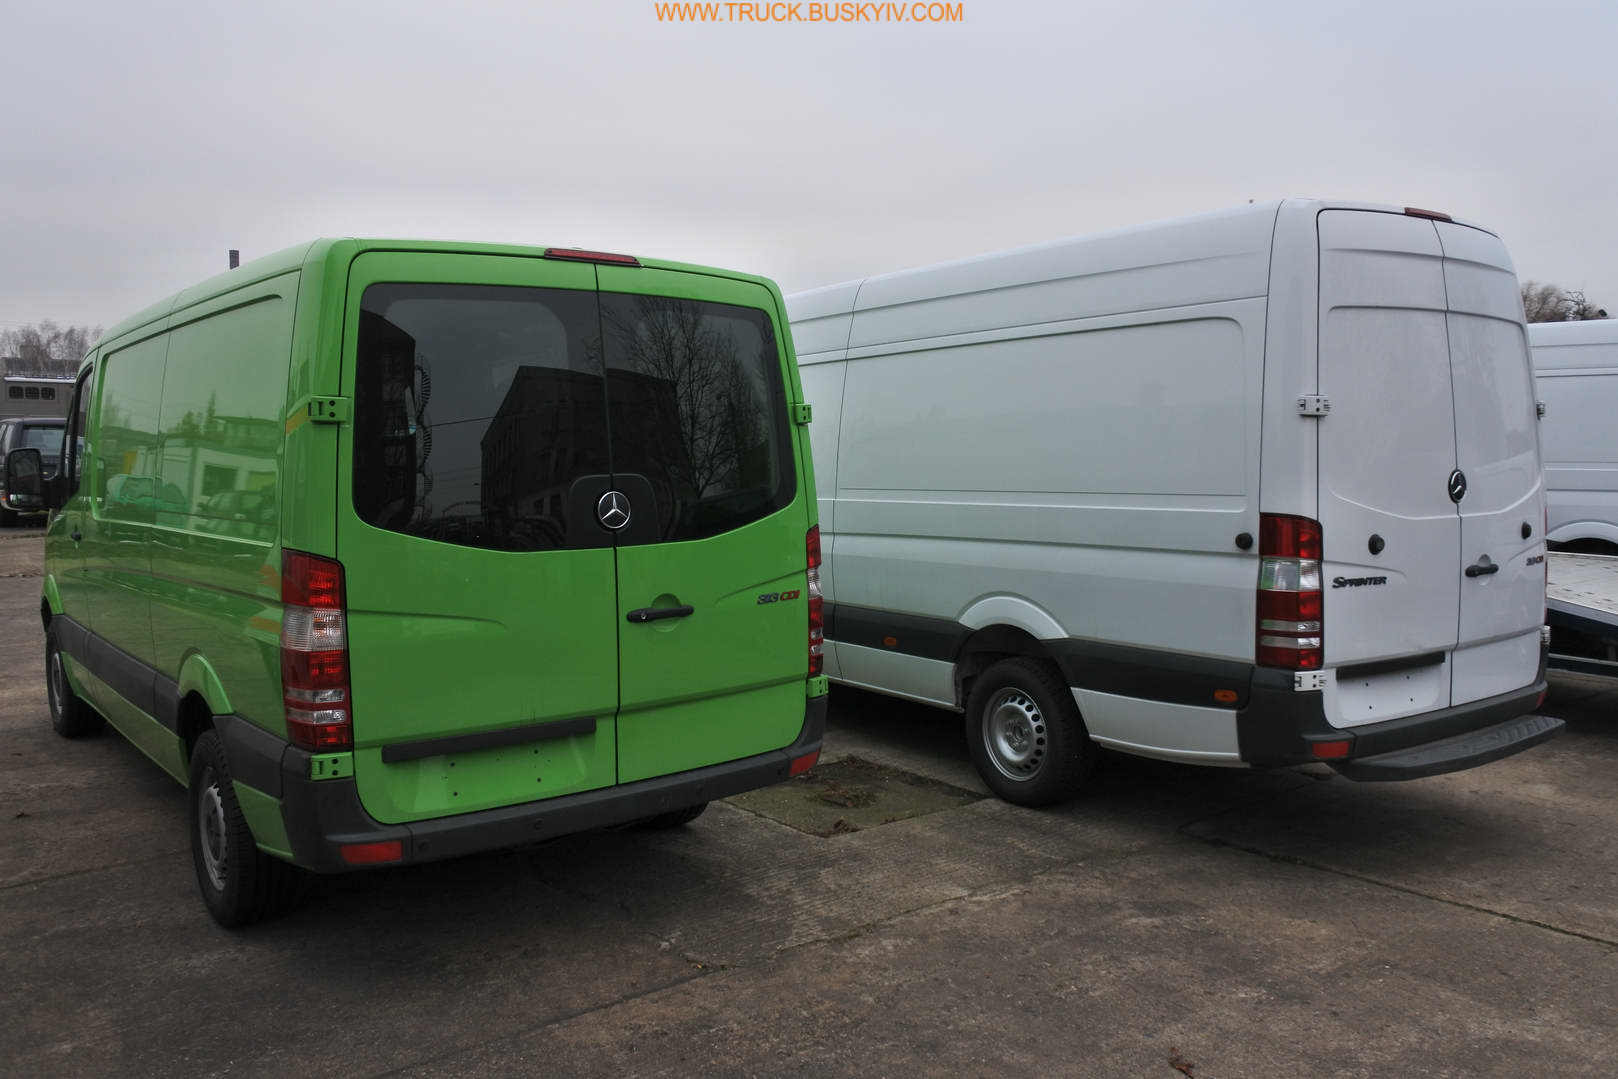 2012_mb_sprinter313_green_13